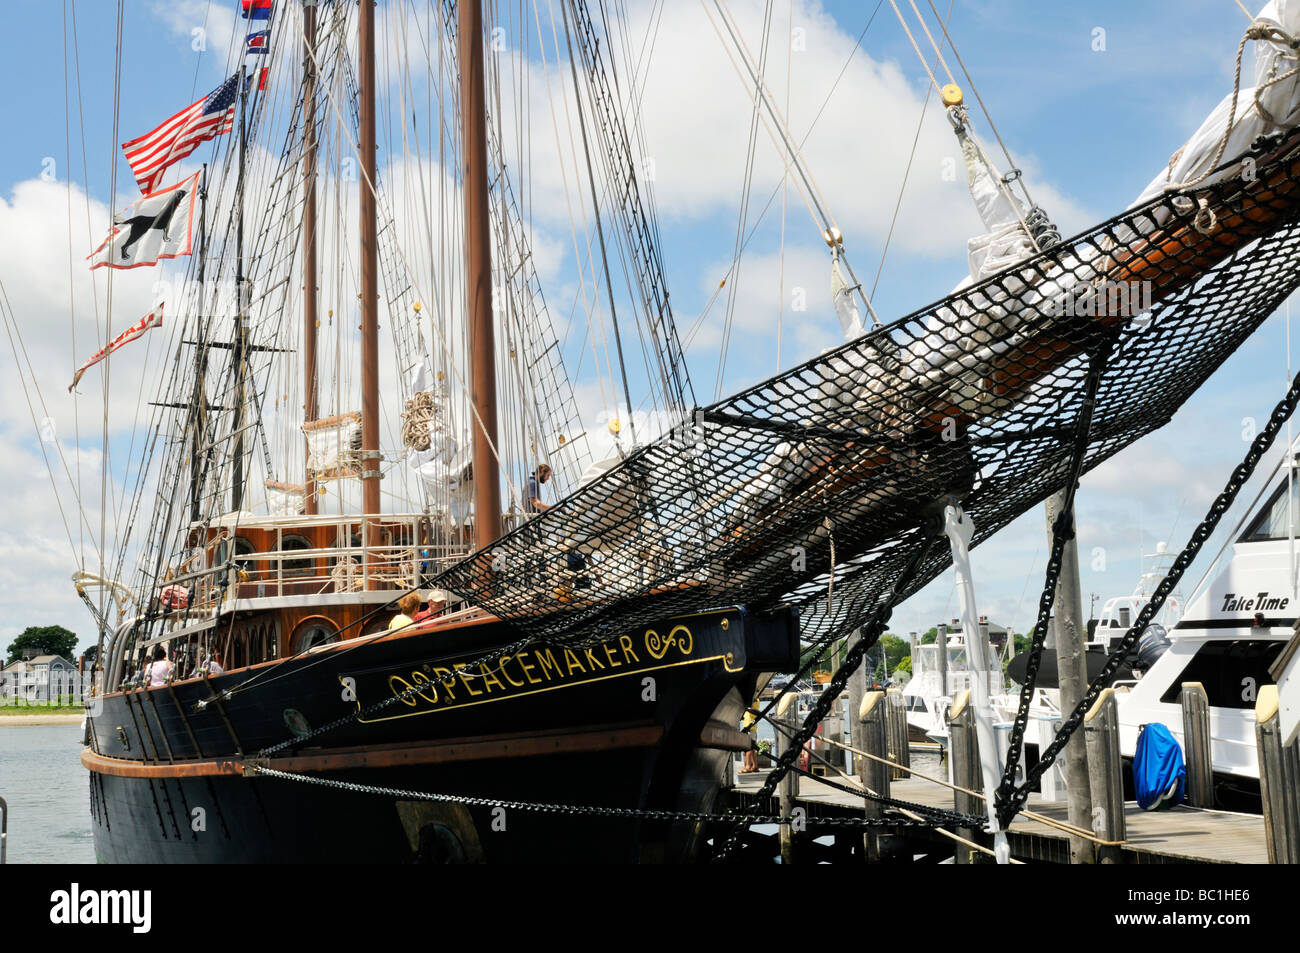 Tall ship Peacemaker at dock from the bow Cape Cod USA - Stock Image